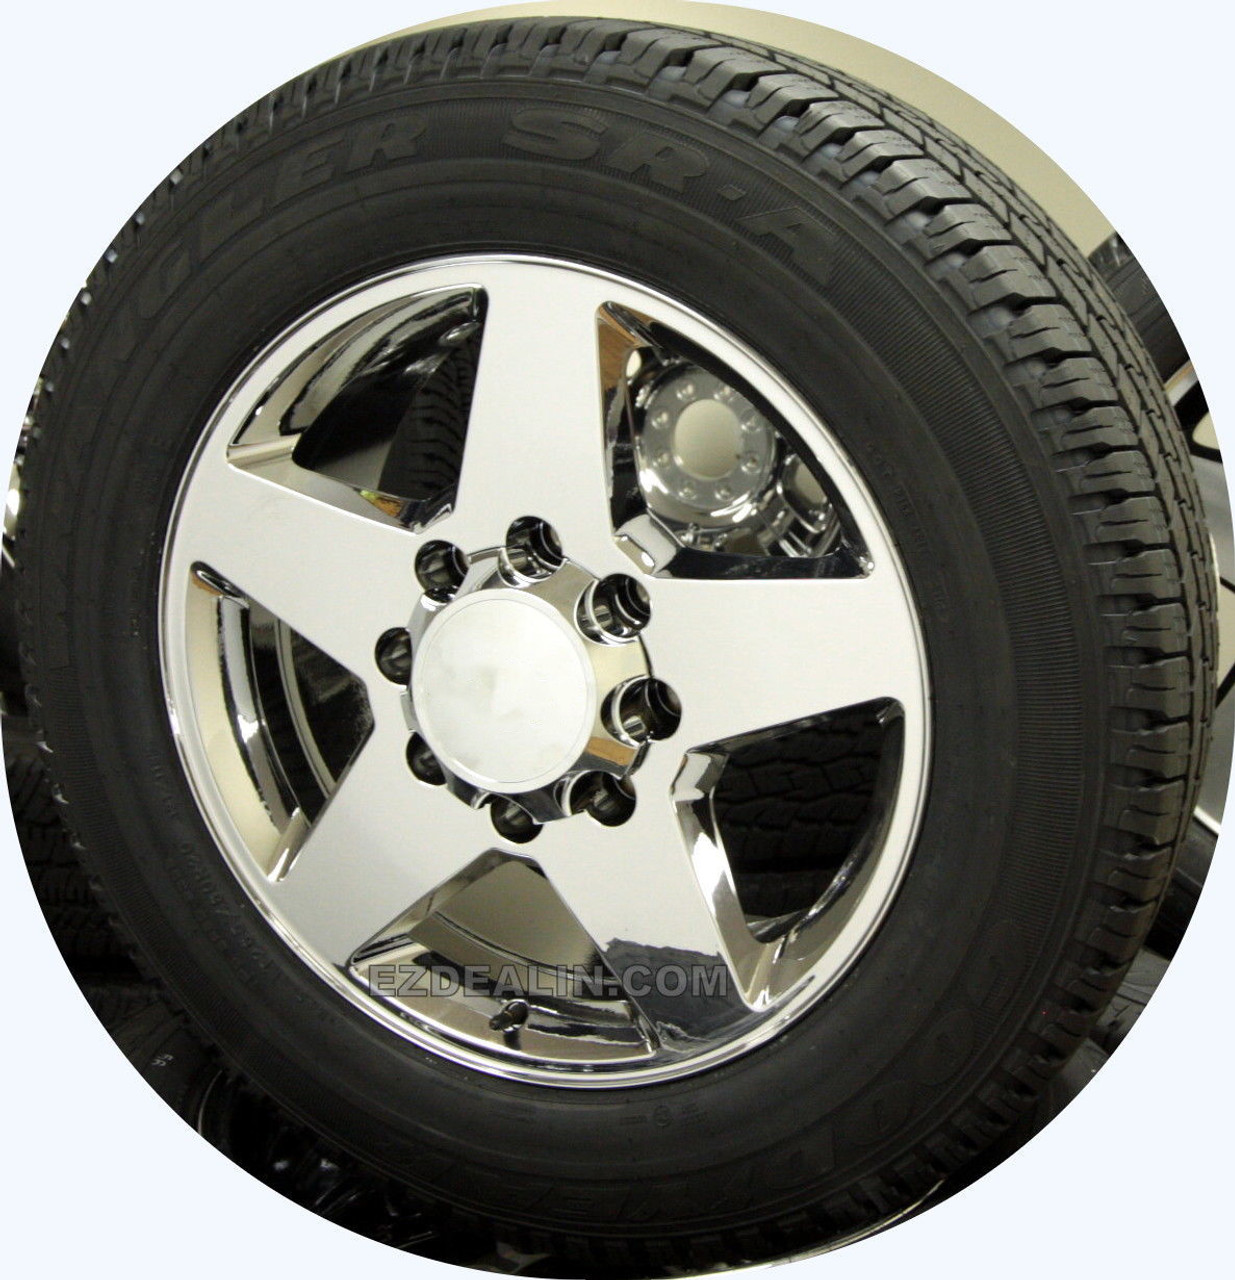 """Chrome 20"""" 8 Lug 8-180 Wheels With Goodyear Tires for 2011-2018 Chevy Silverado HD 2500 3500 - New Set of 4"""